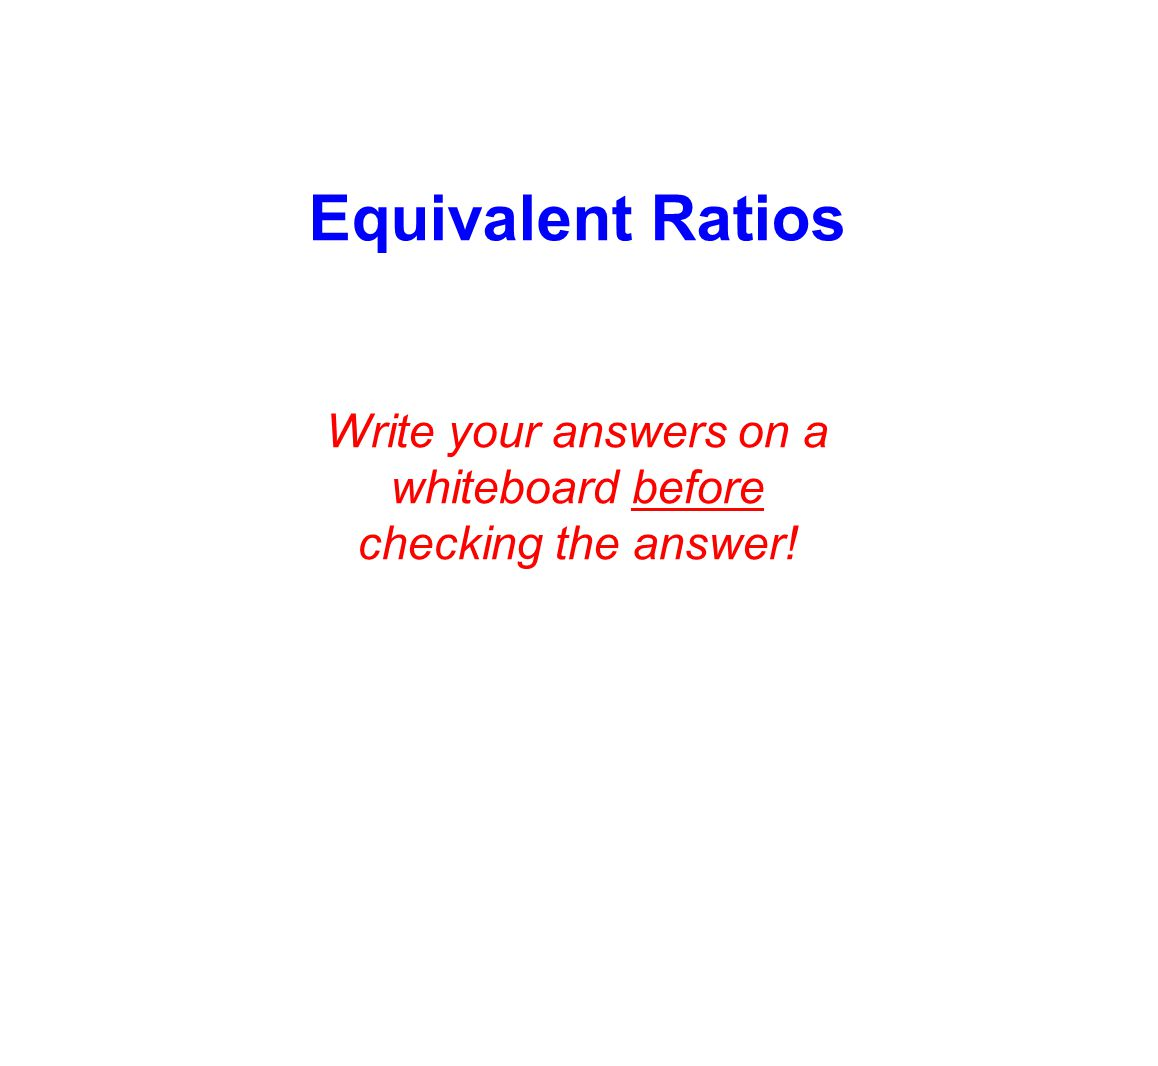 Equivalent Ratios Write your answers on a whiteboard before checking the answer!